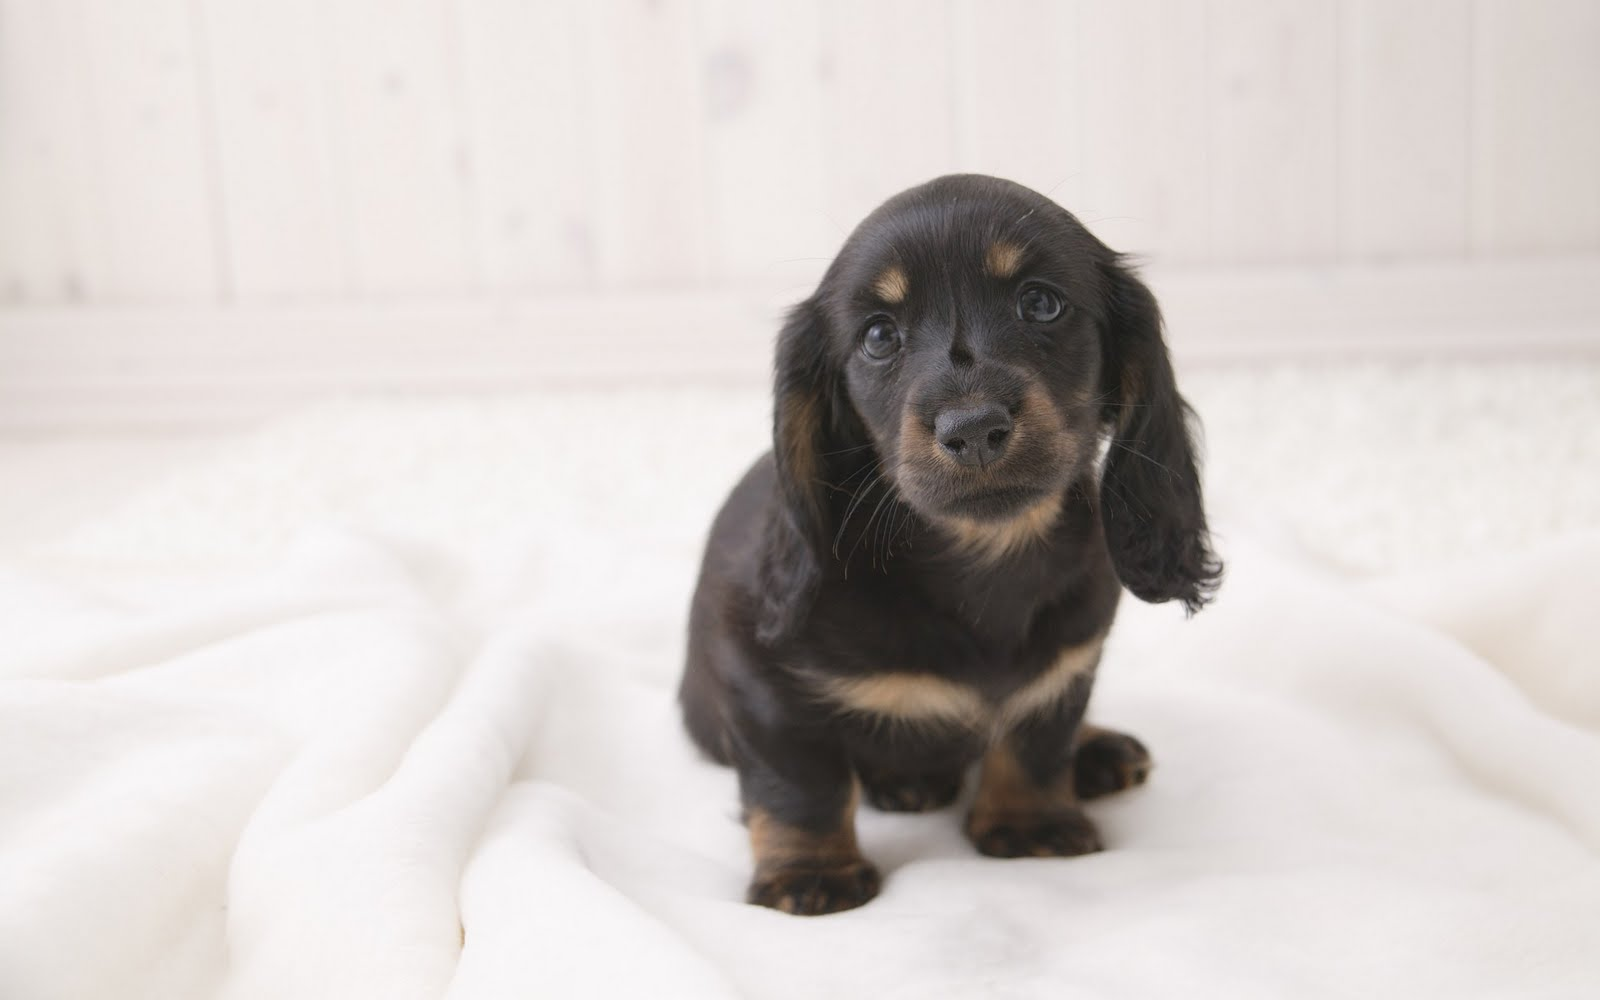 Dog Breeds Wallpaper Backgrounds Desktop Background